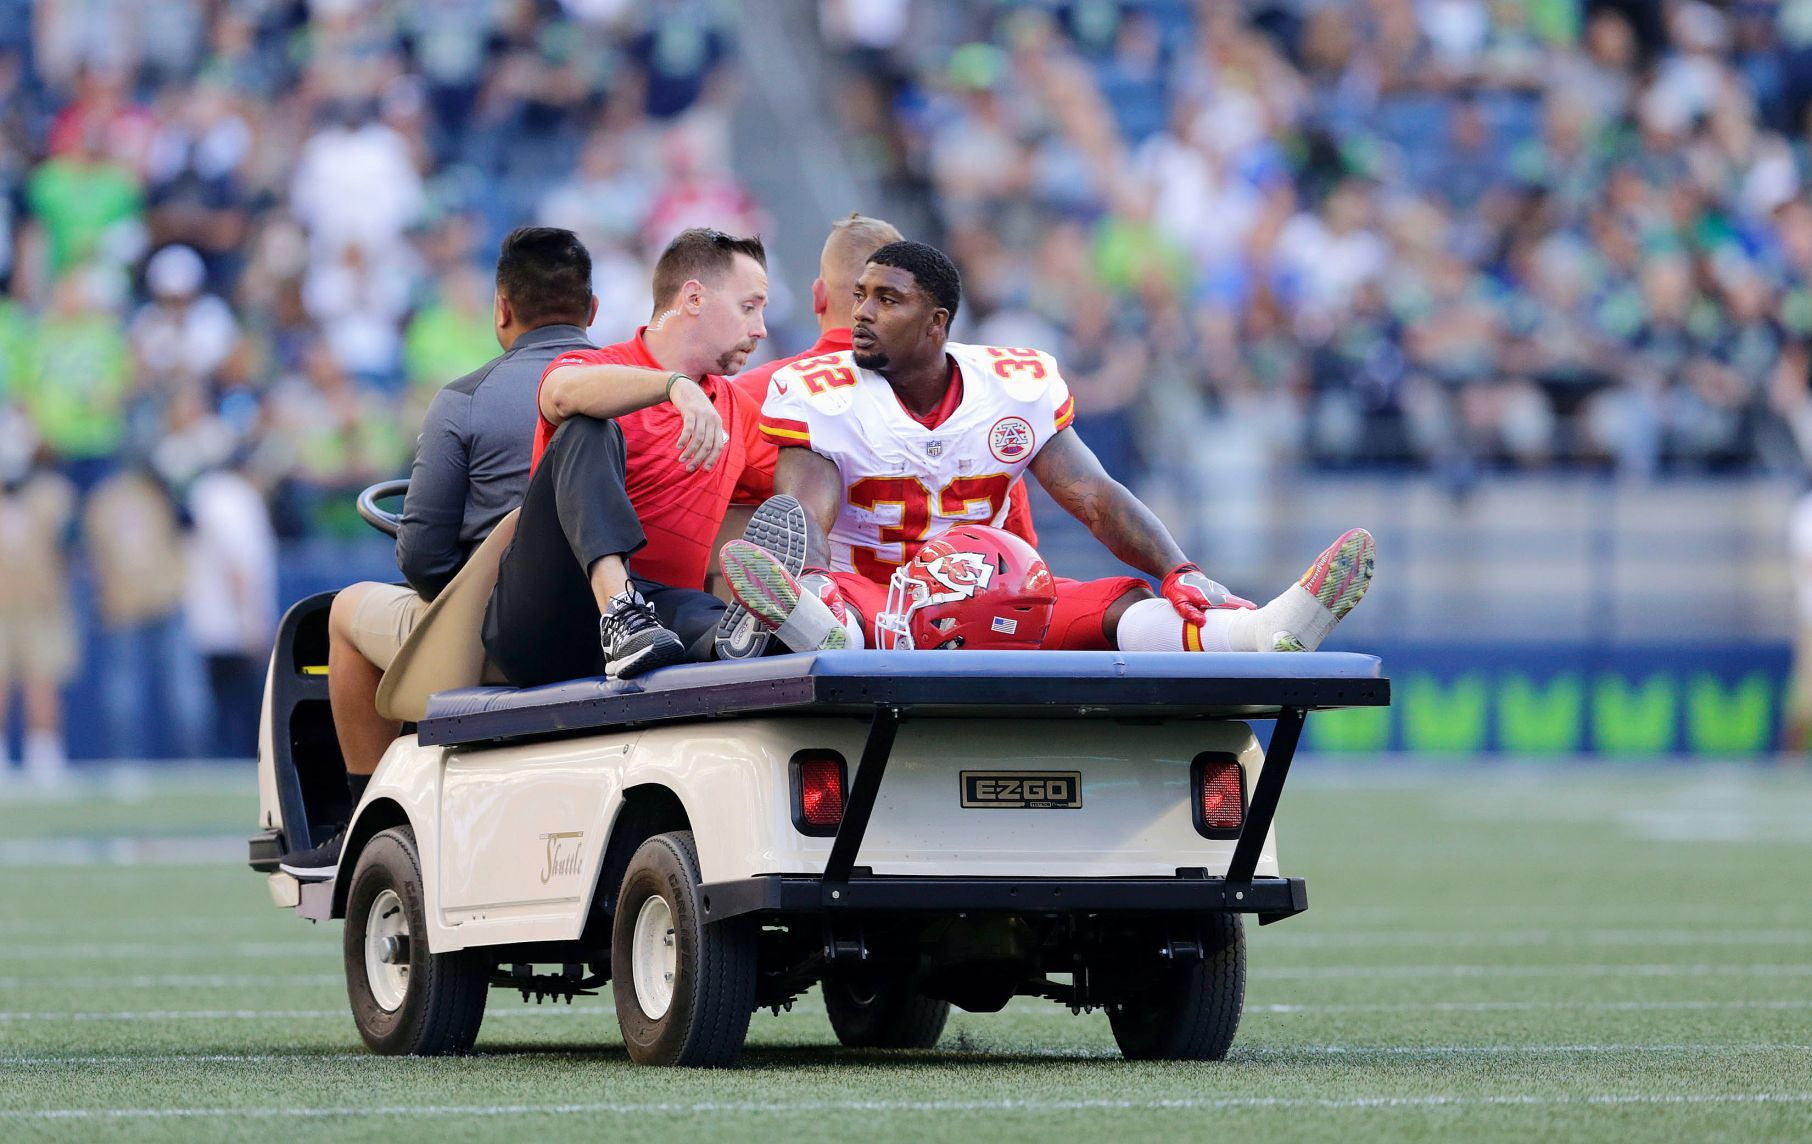 5 things to watch for in the Chiefs-Seahawks preseason game